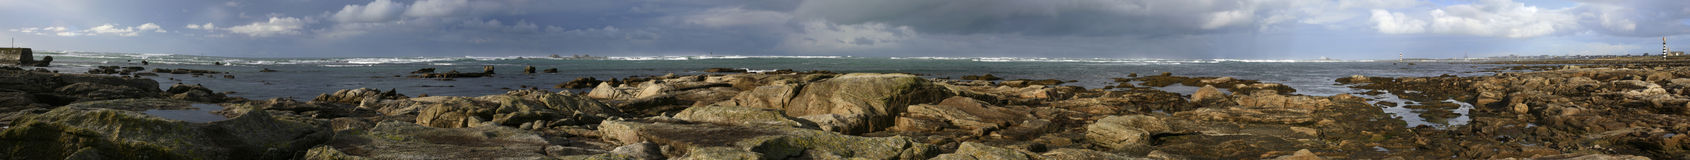 Low tide. Big stitched Panorama on a stormy day in France Stock Image